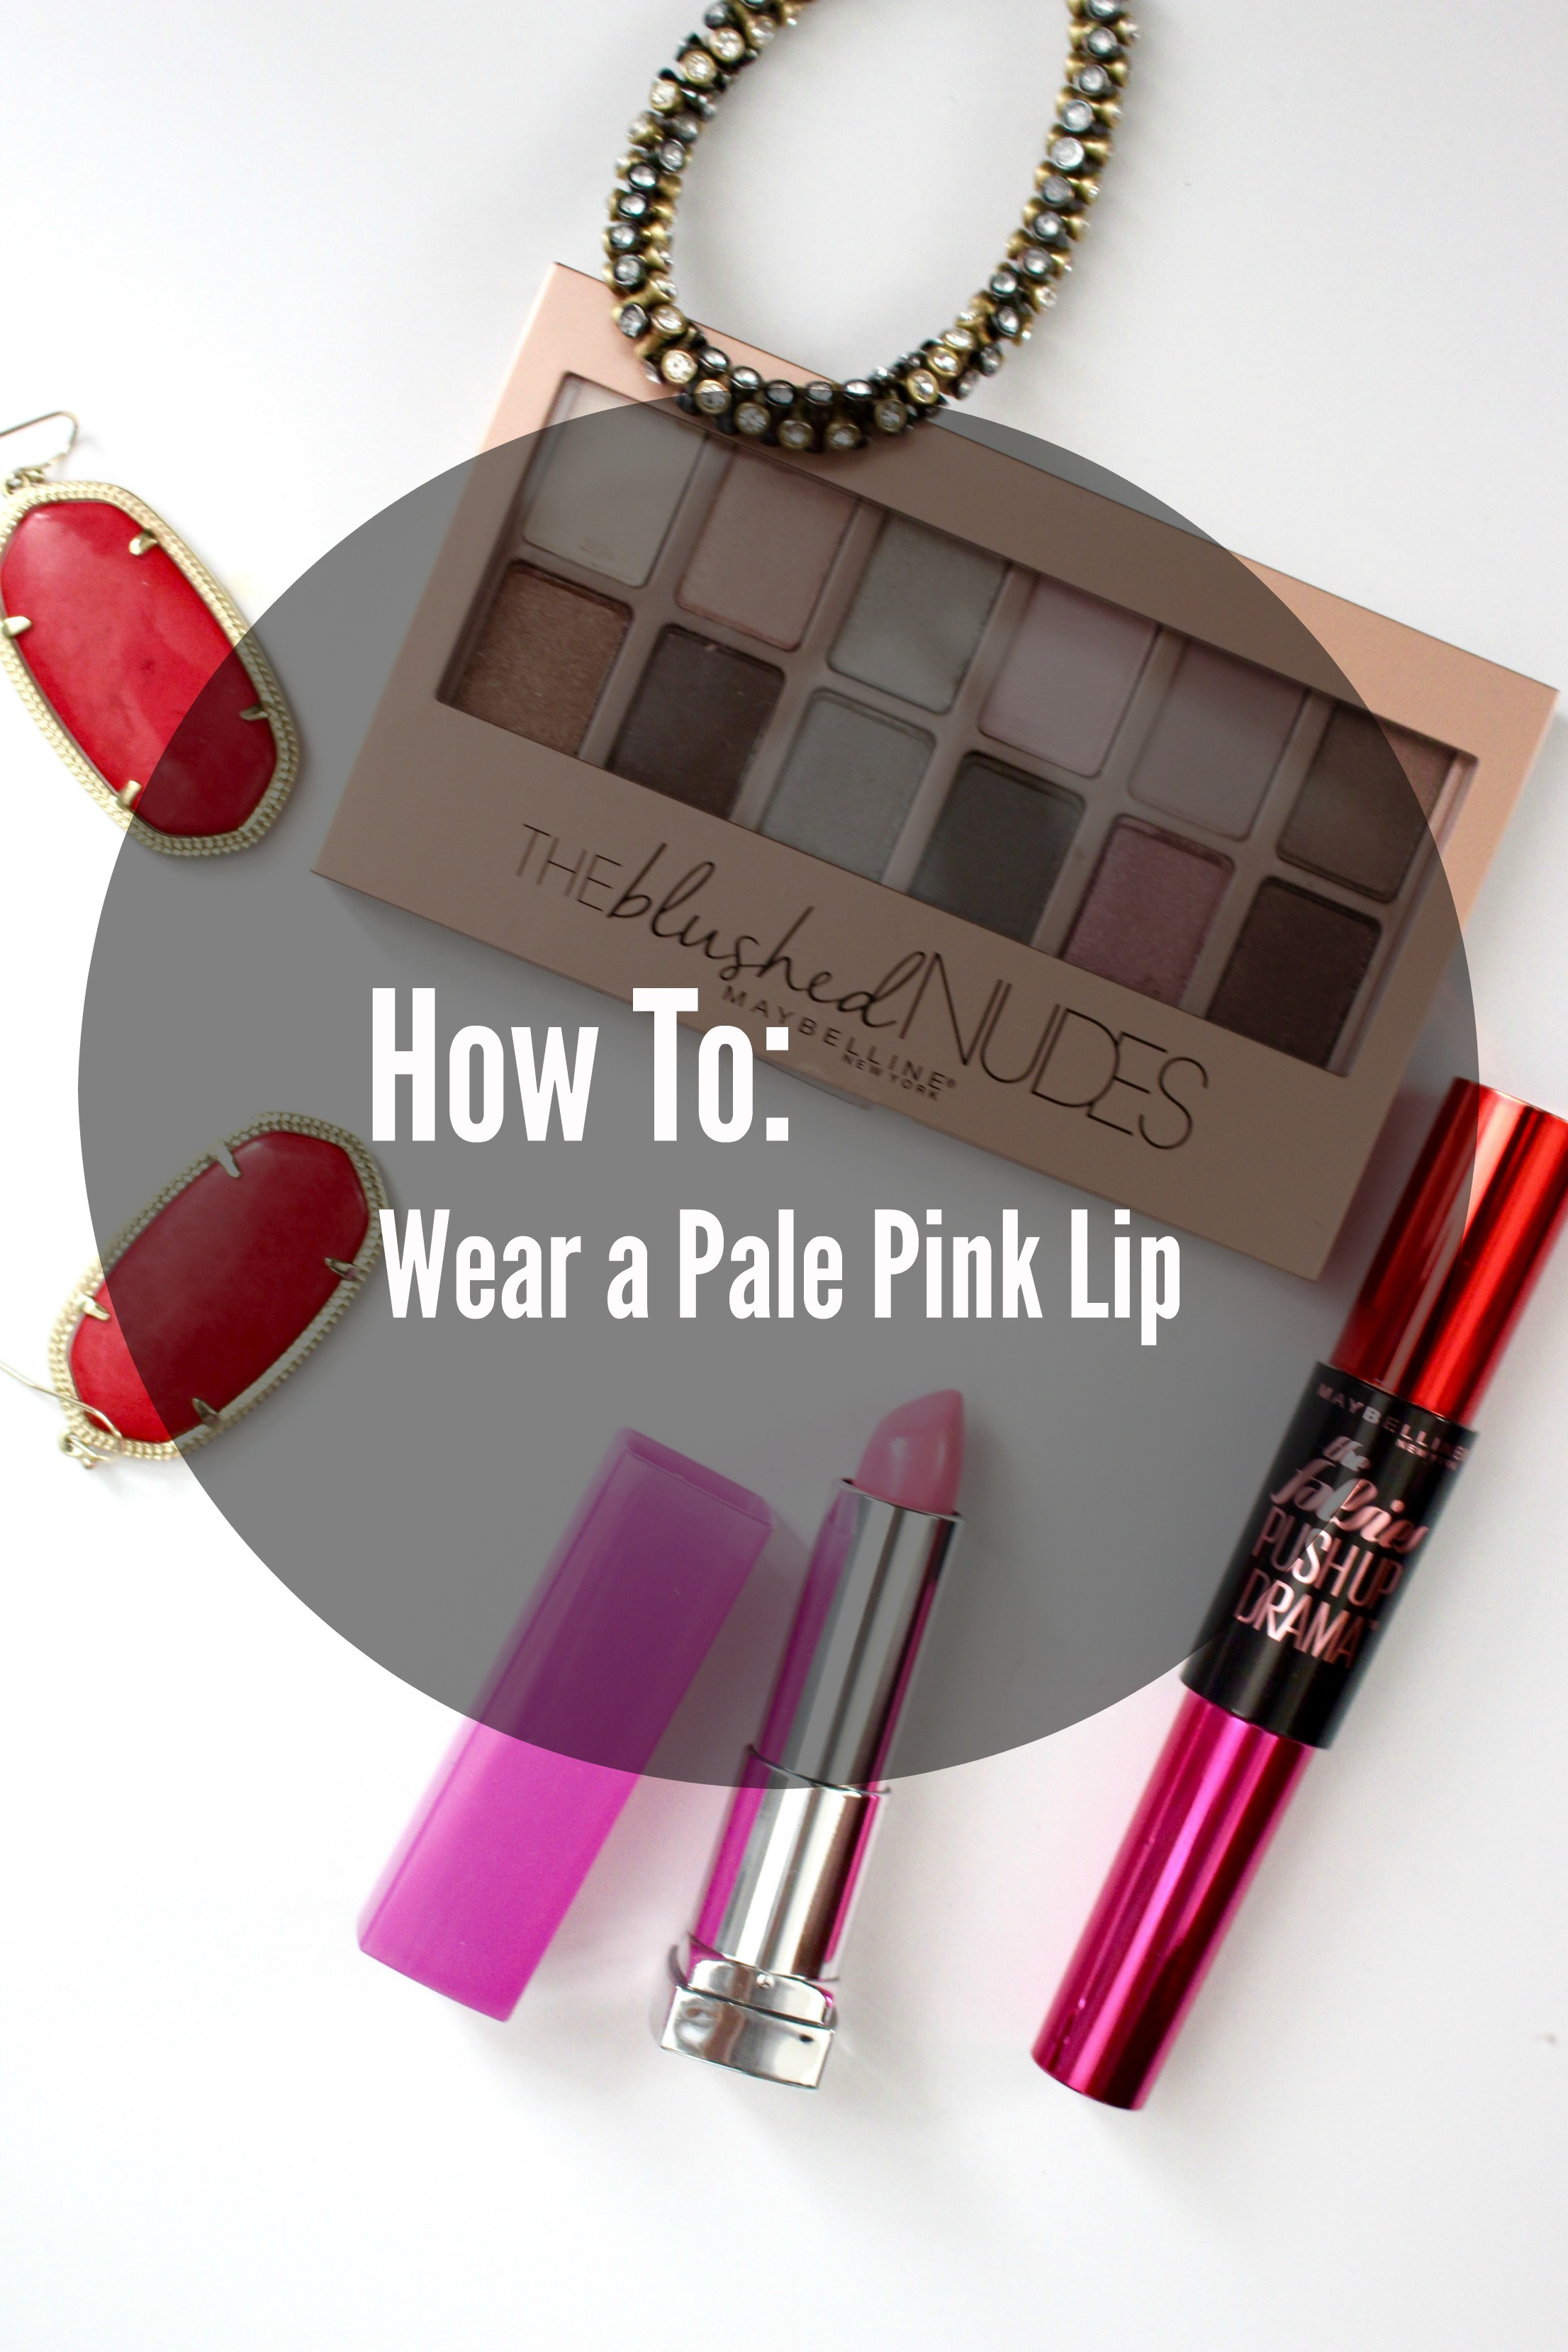 How To Wear a Pale Pink Lip